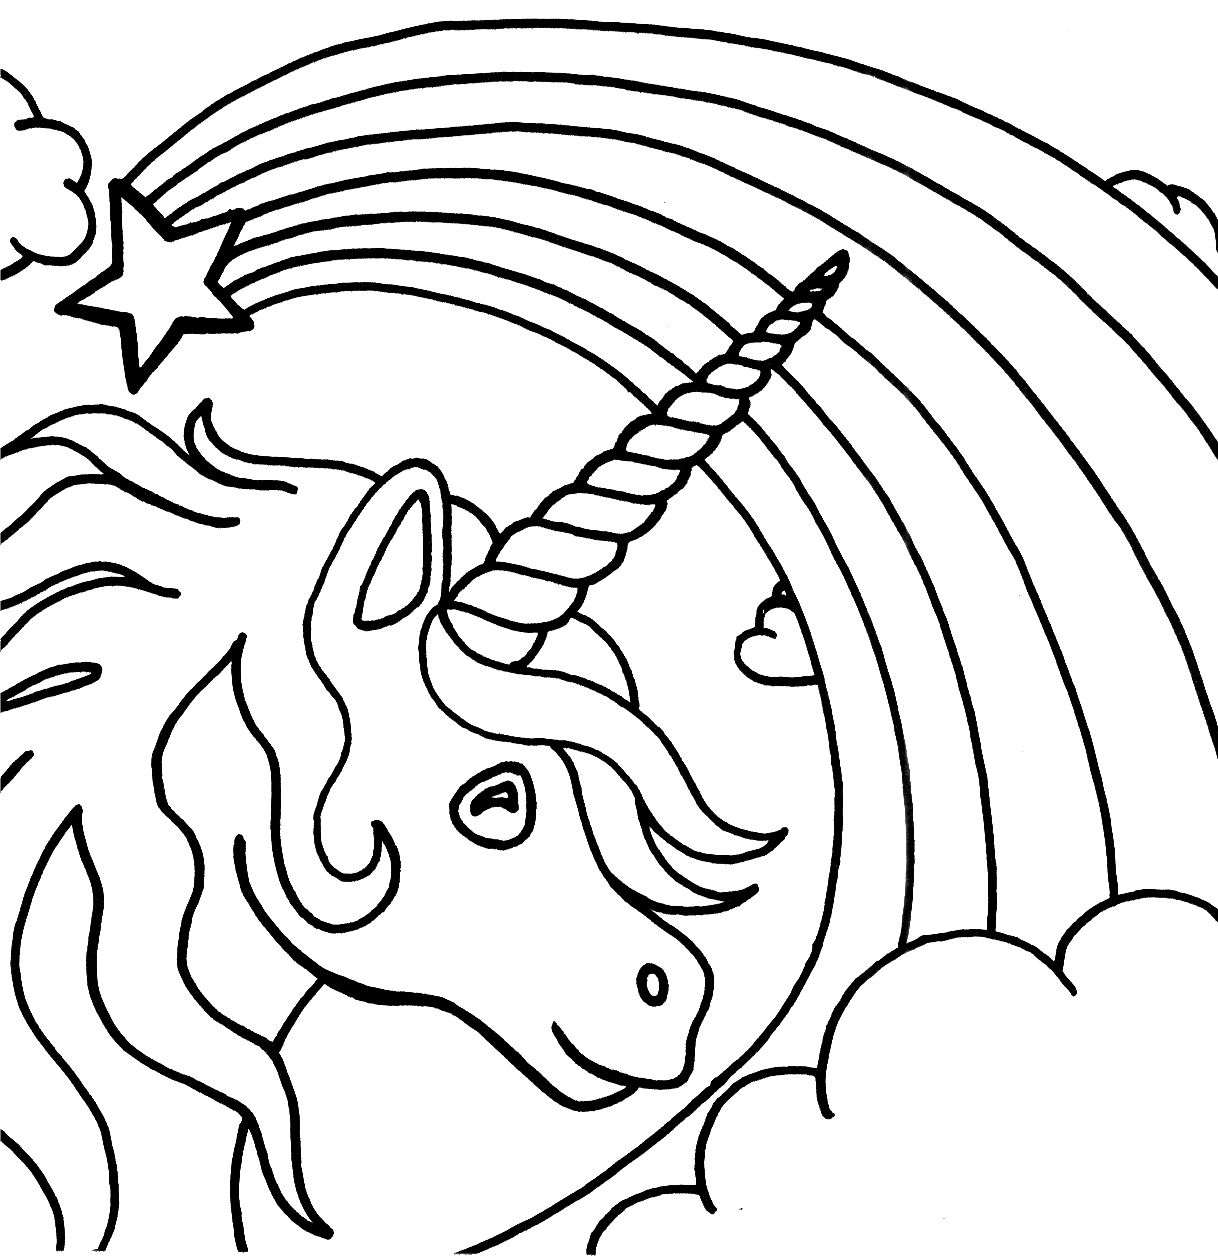 Free Printable Unicorn Coloring Pages For Kids | Fun | Pinterest - Free Printable Unicorn Coloring Pages